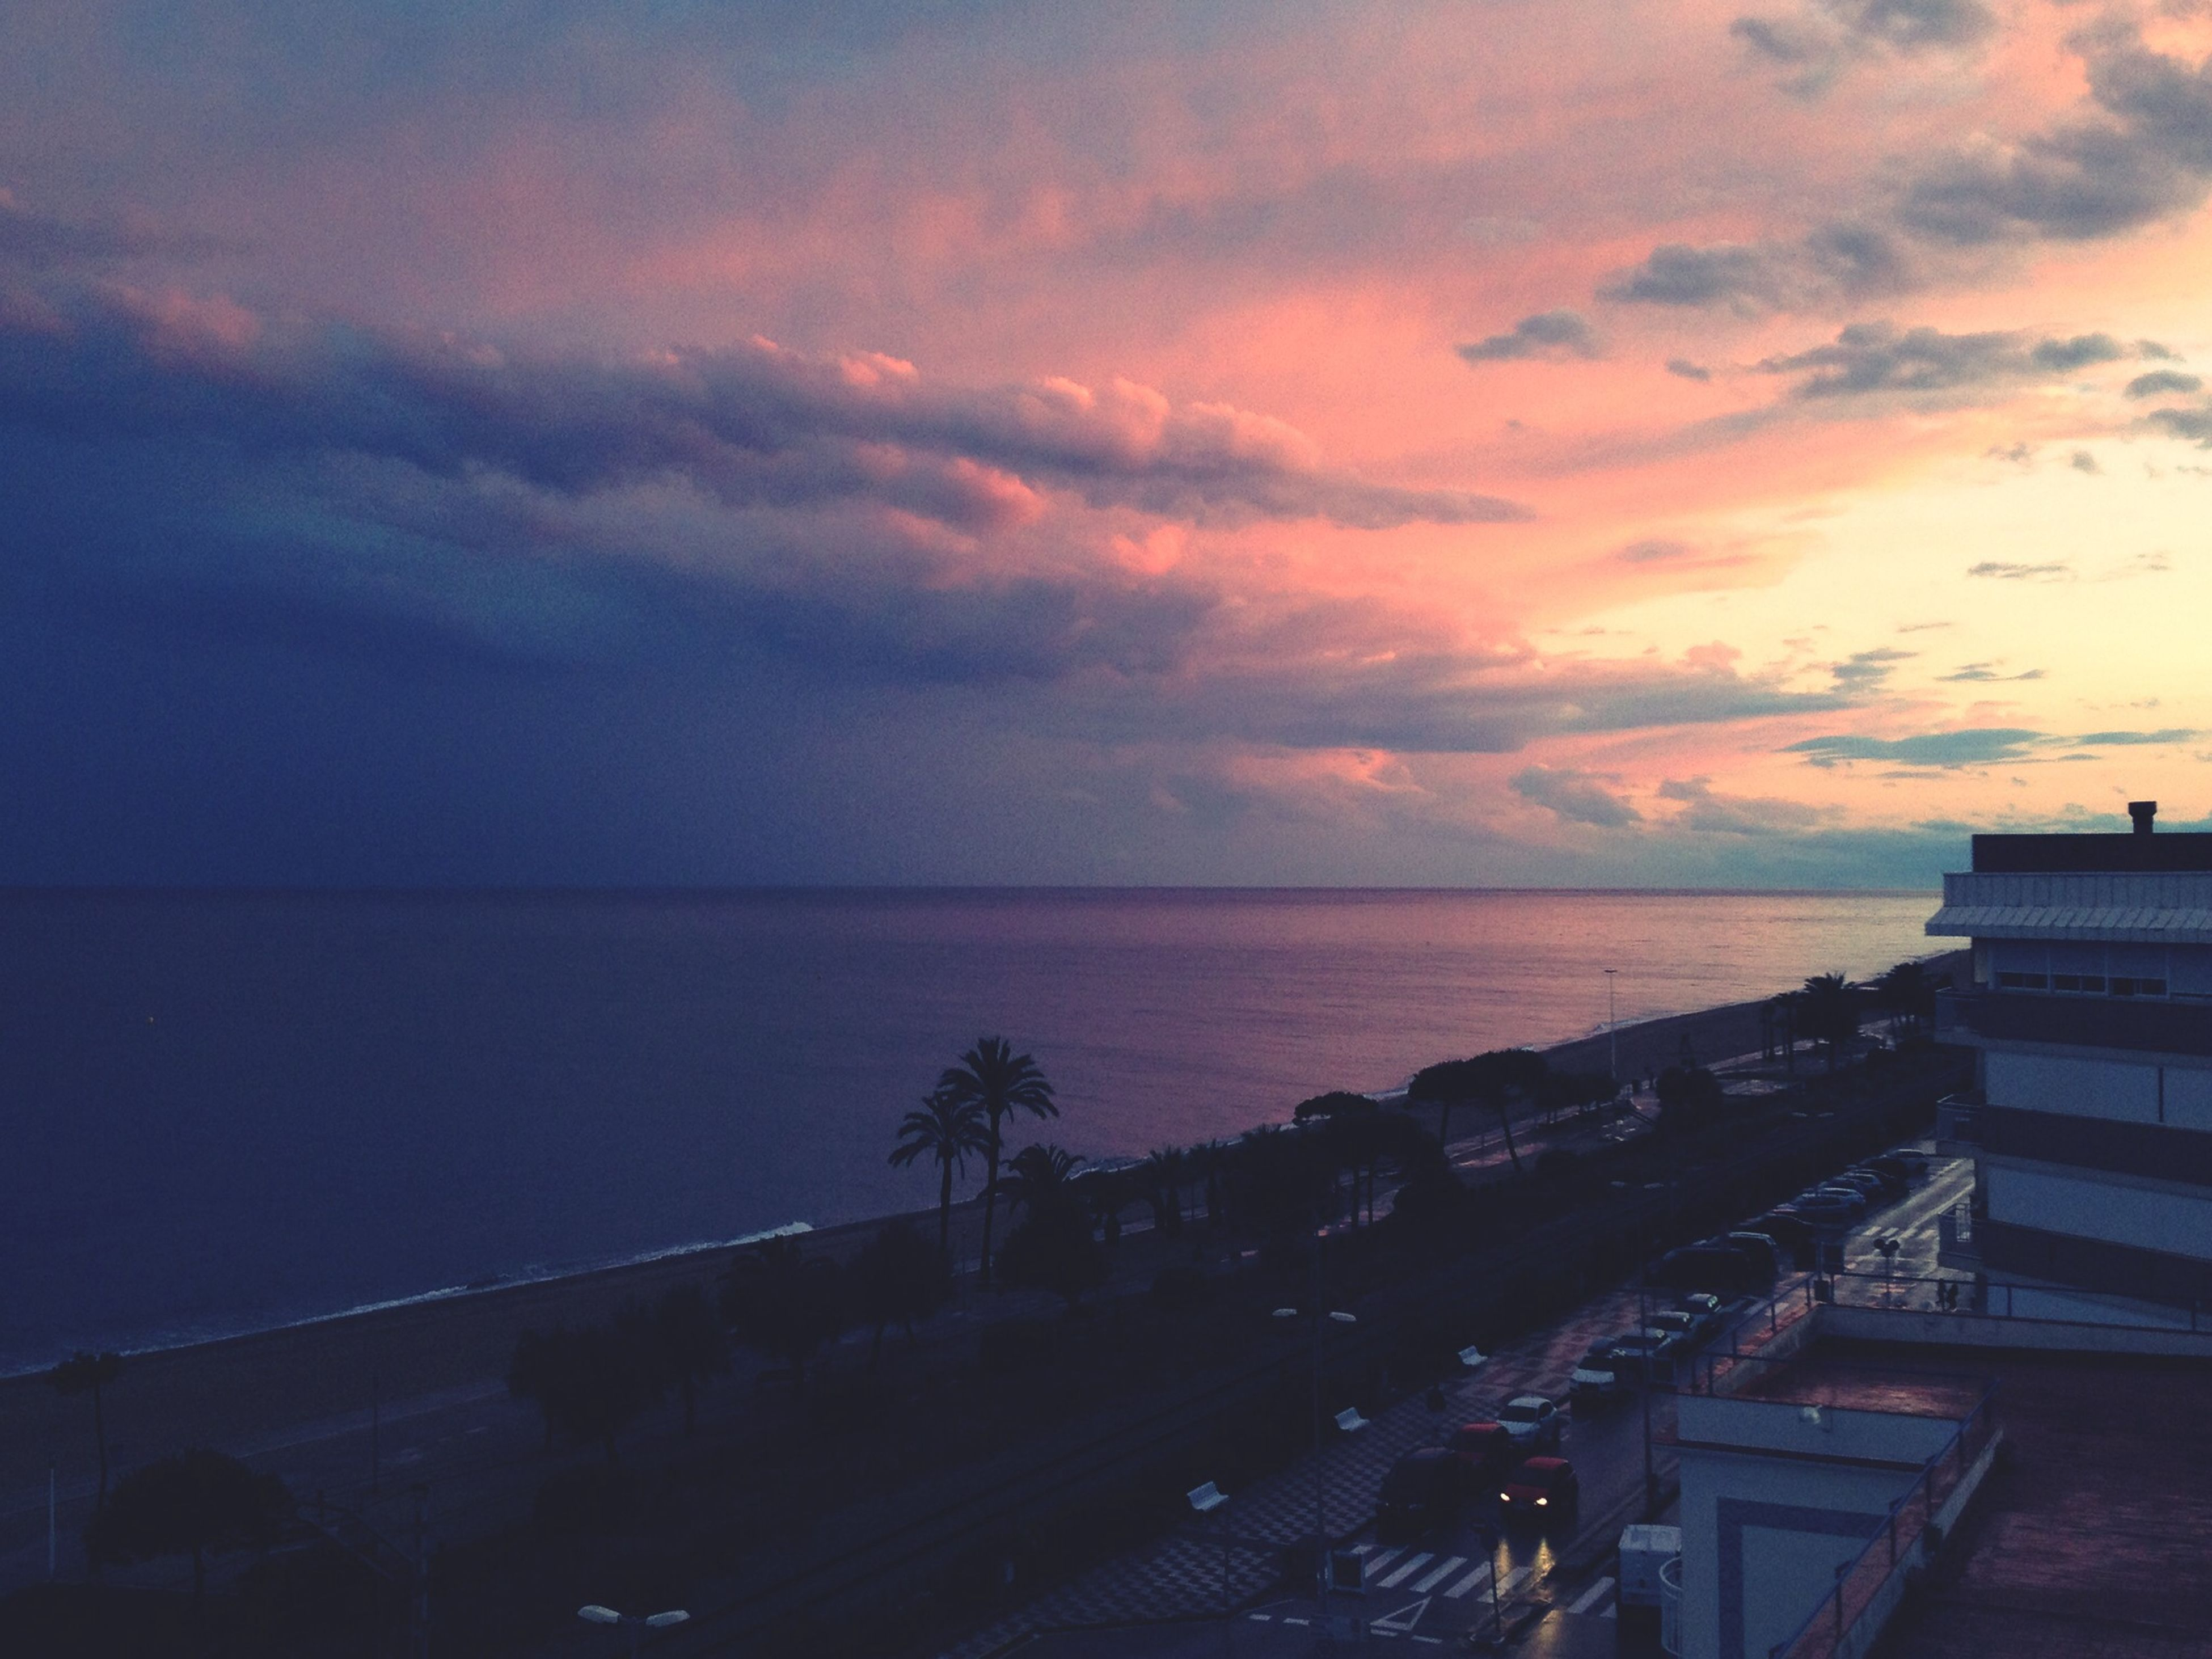 sea, horizon over water, sky, sunset, water, cloud - sky, scenics, beauty in nature, tranquil scene, tranquility, built structure, nature, architecture, idyllic, cloudy, cloud, building exterior, orange color, beach, railing